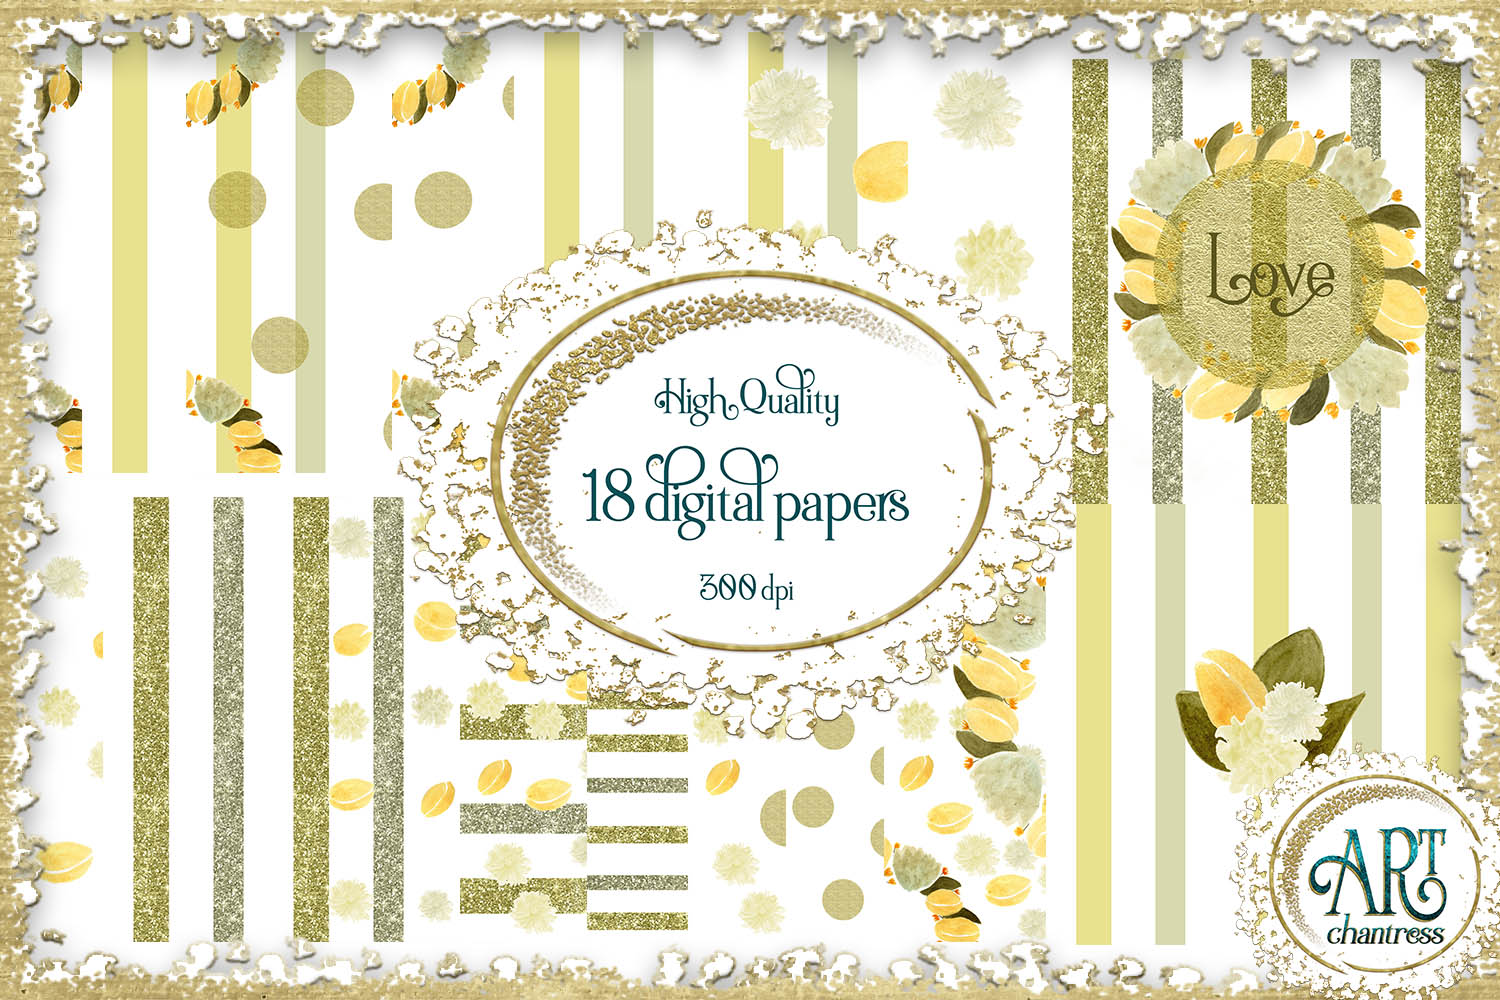 Watercolour floral digital papers frames wreath JPEG 12/12 example image 1